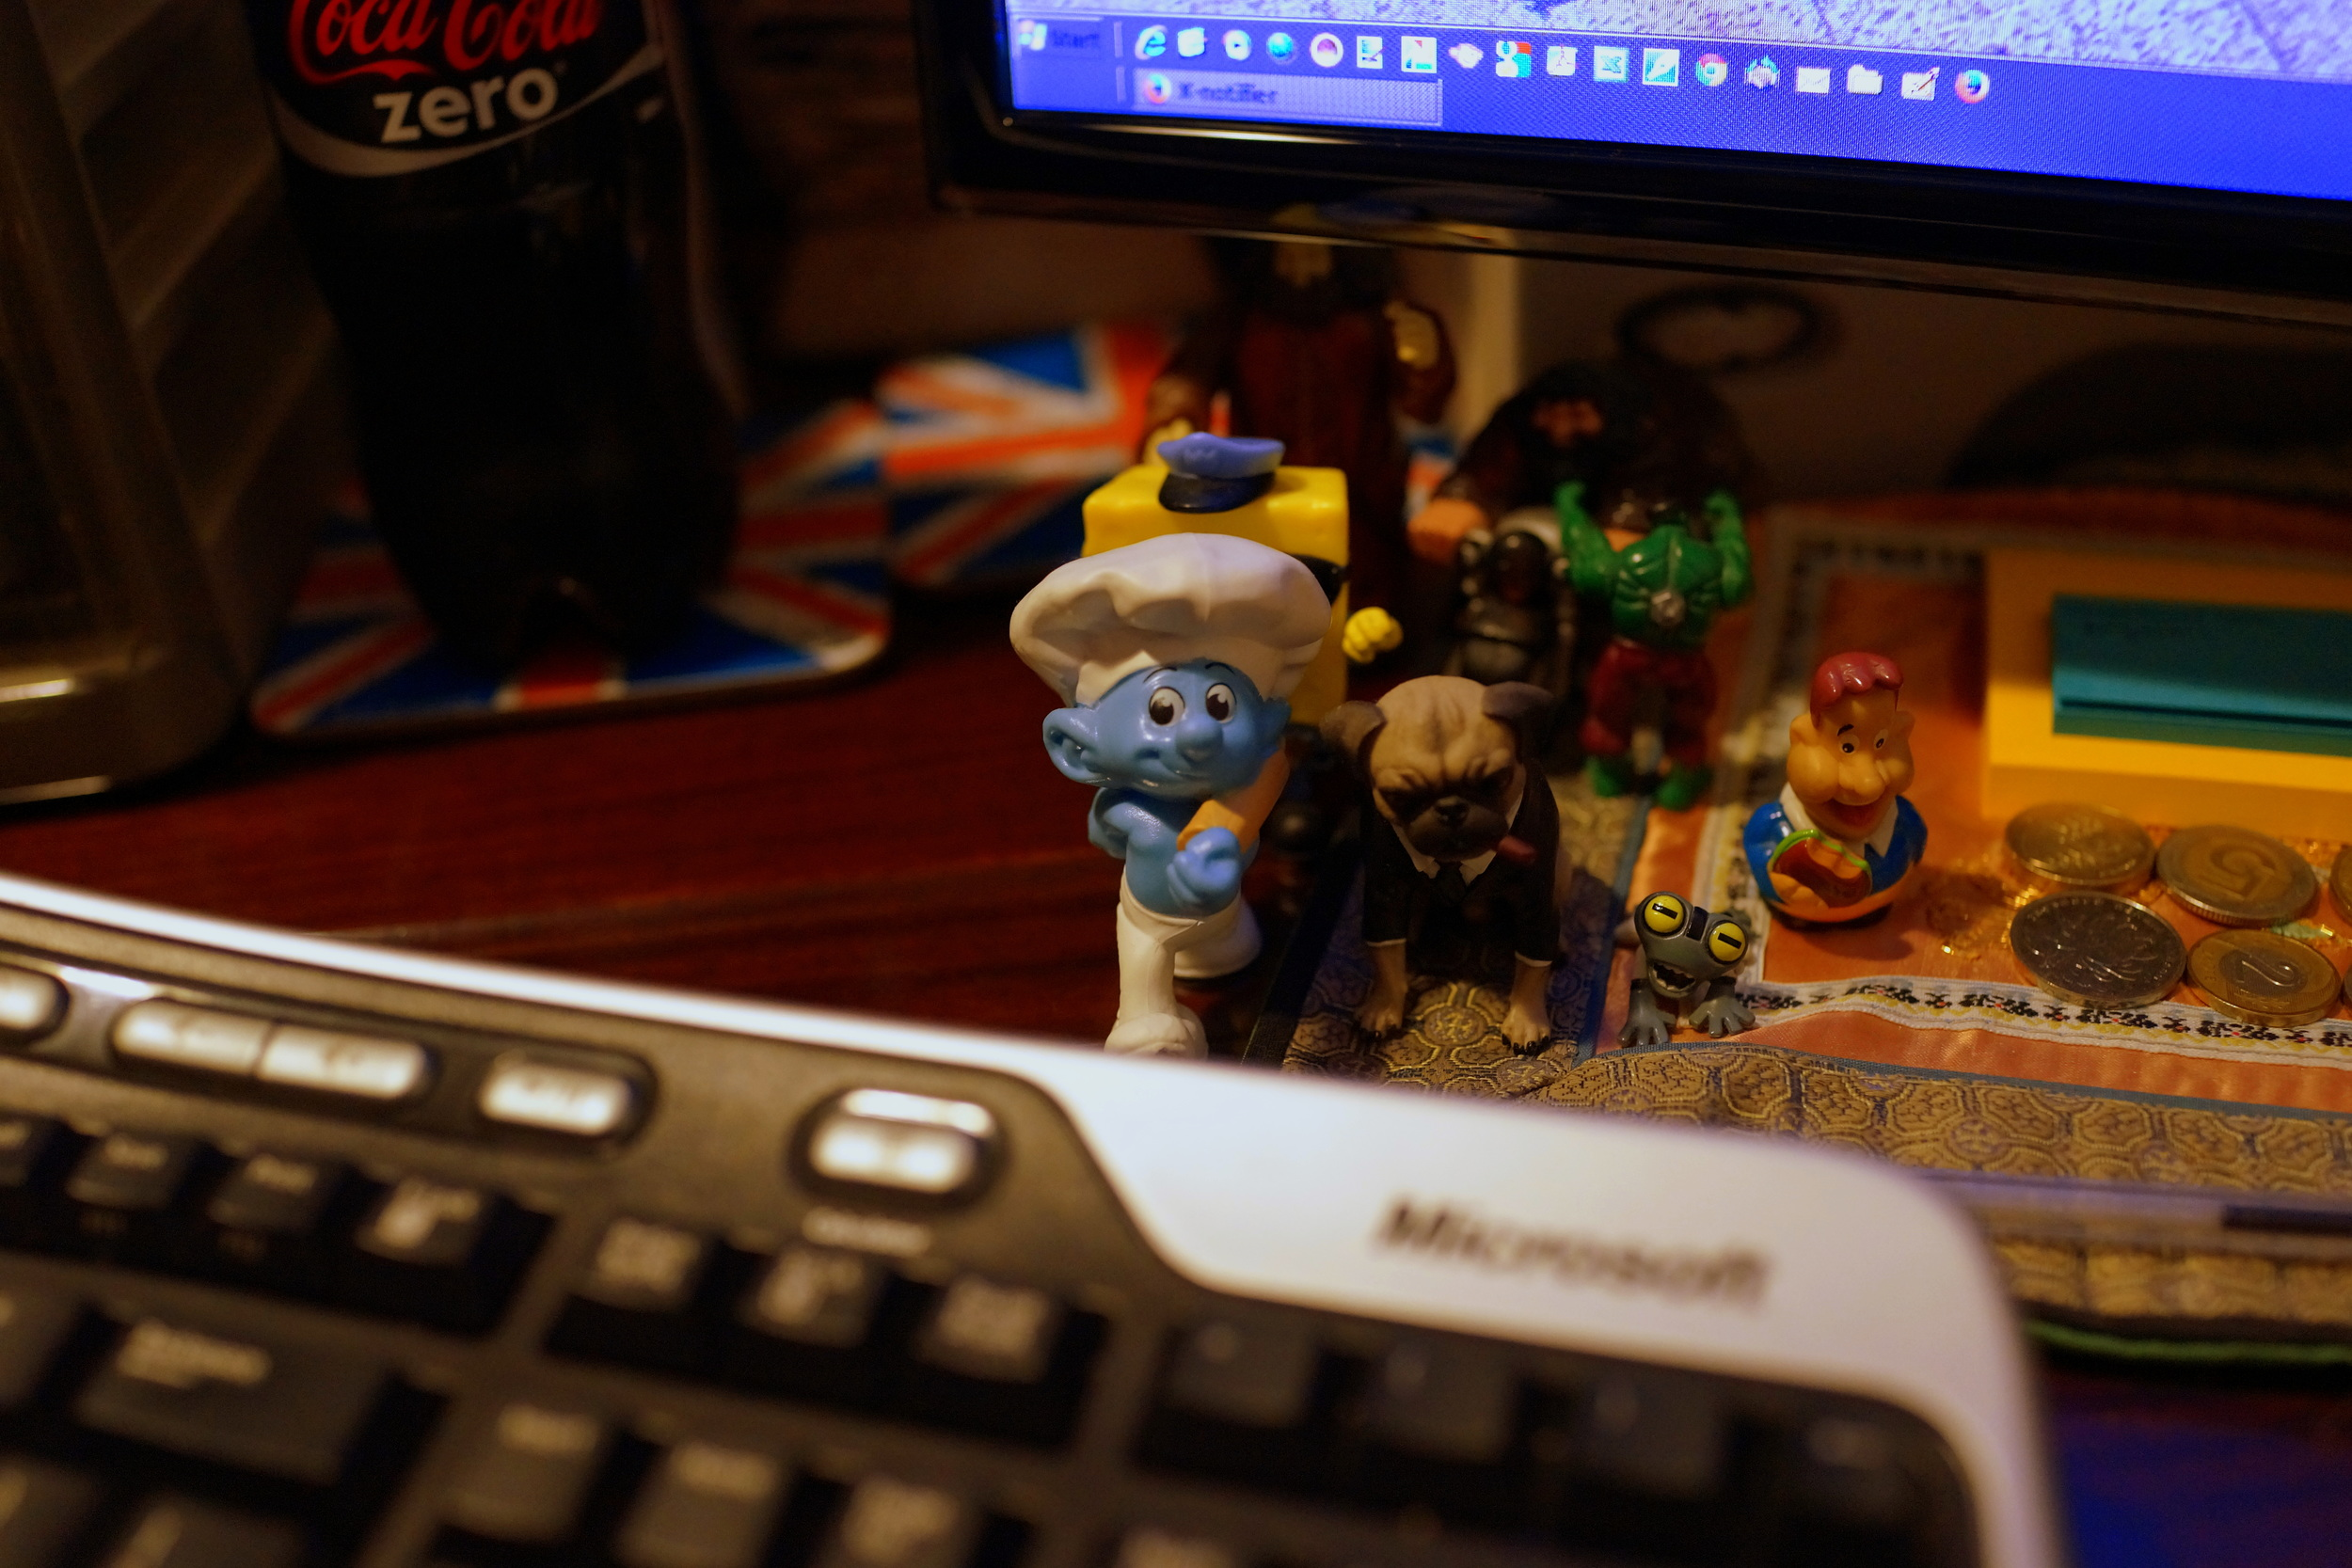 Smurfs, Frank the talking dog and friends - my very first picture taken with the Sony RX 1r